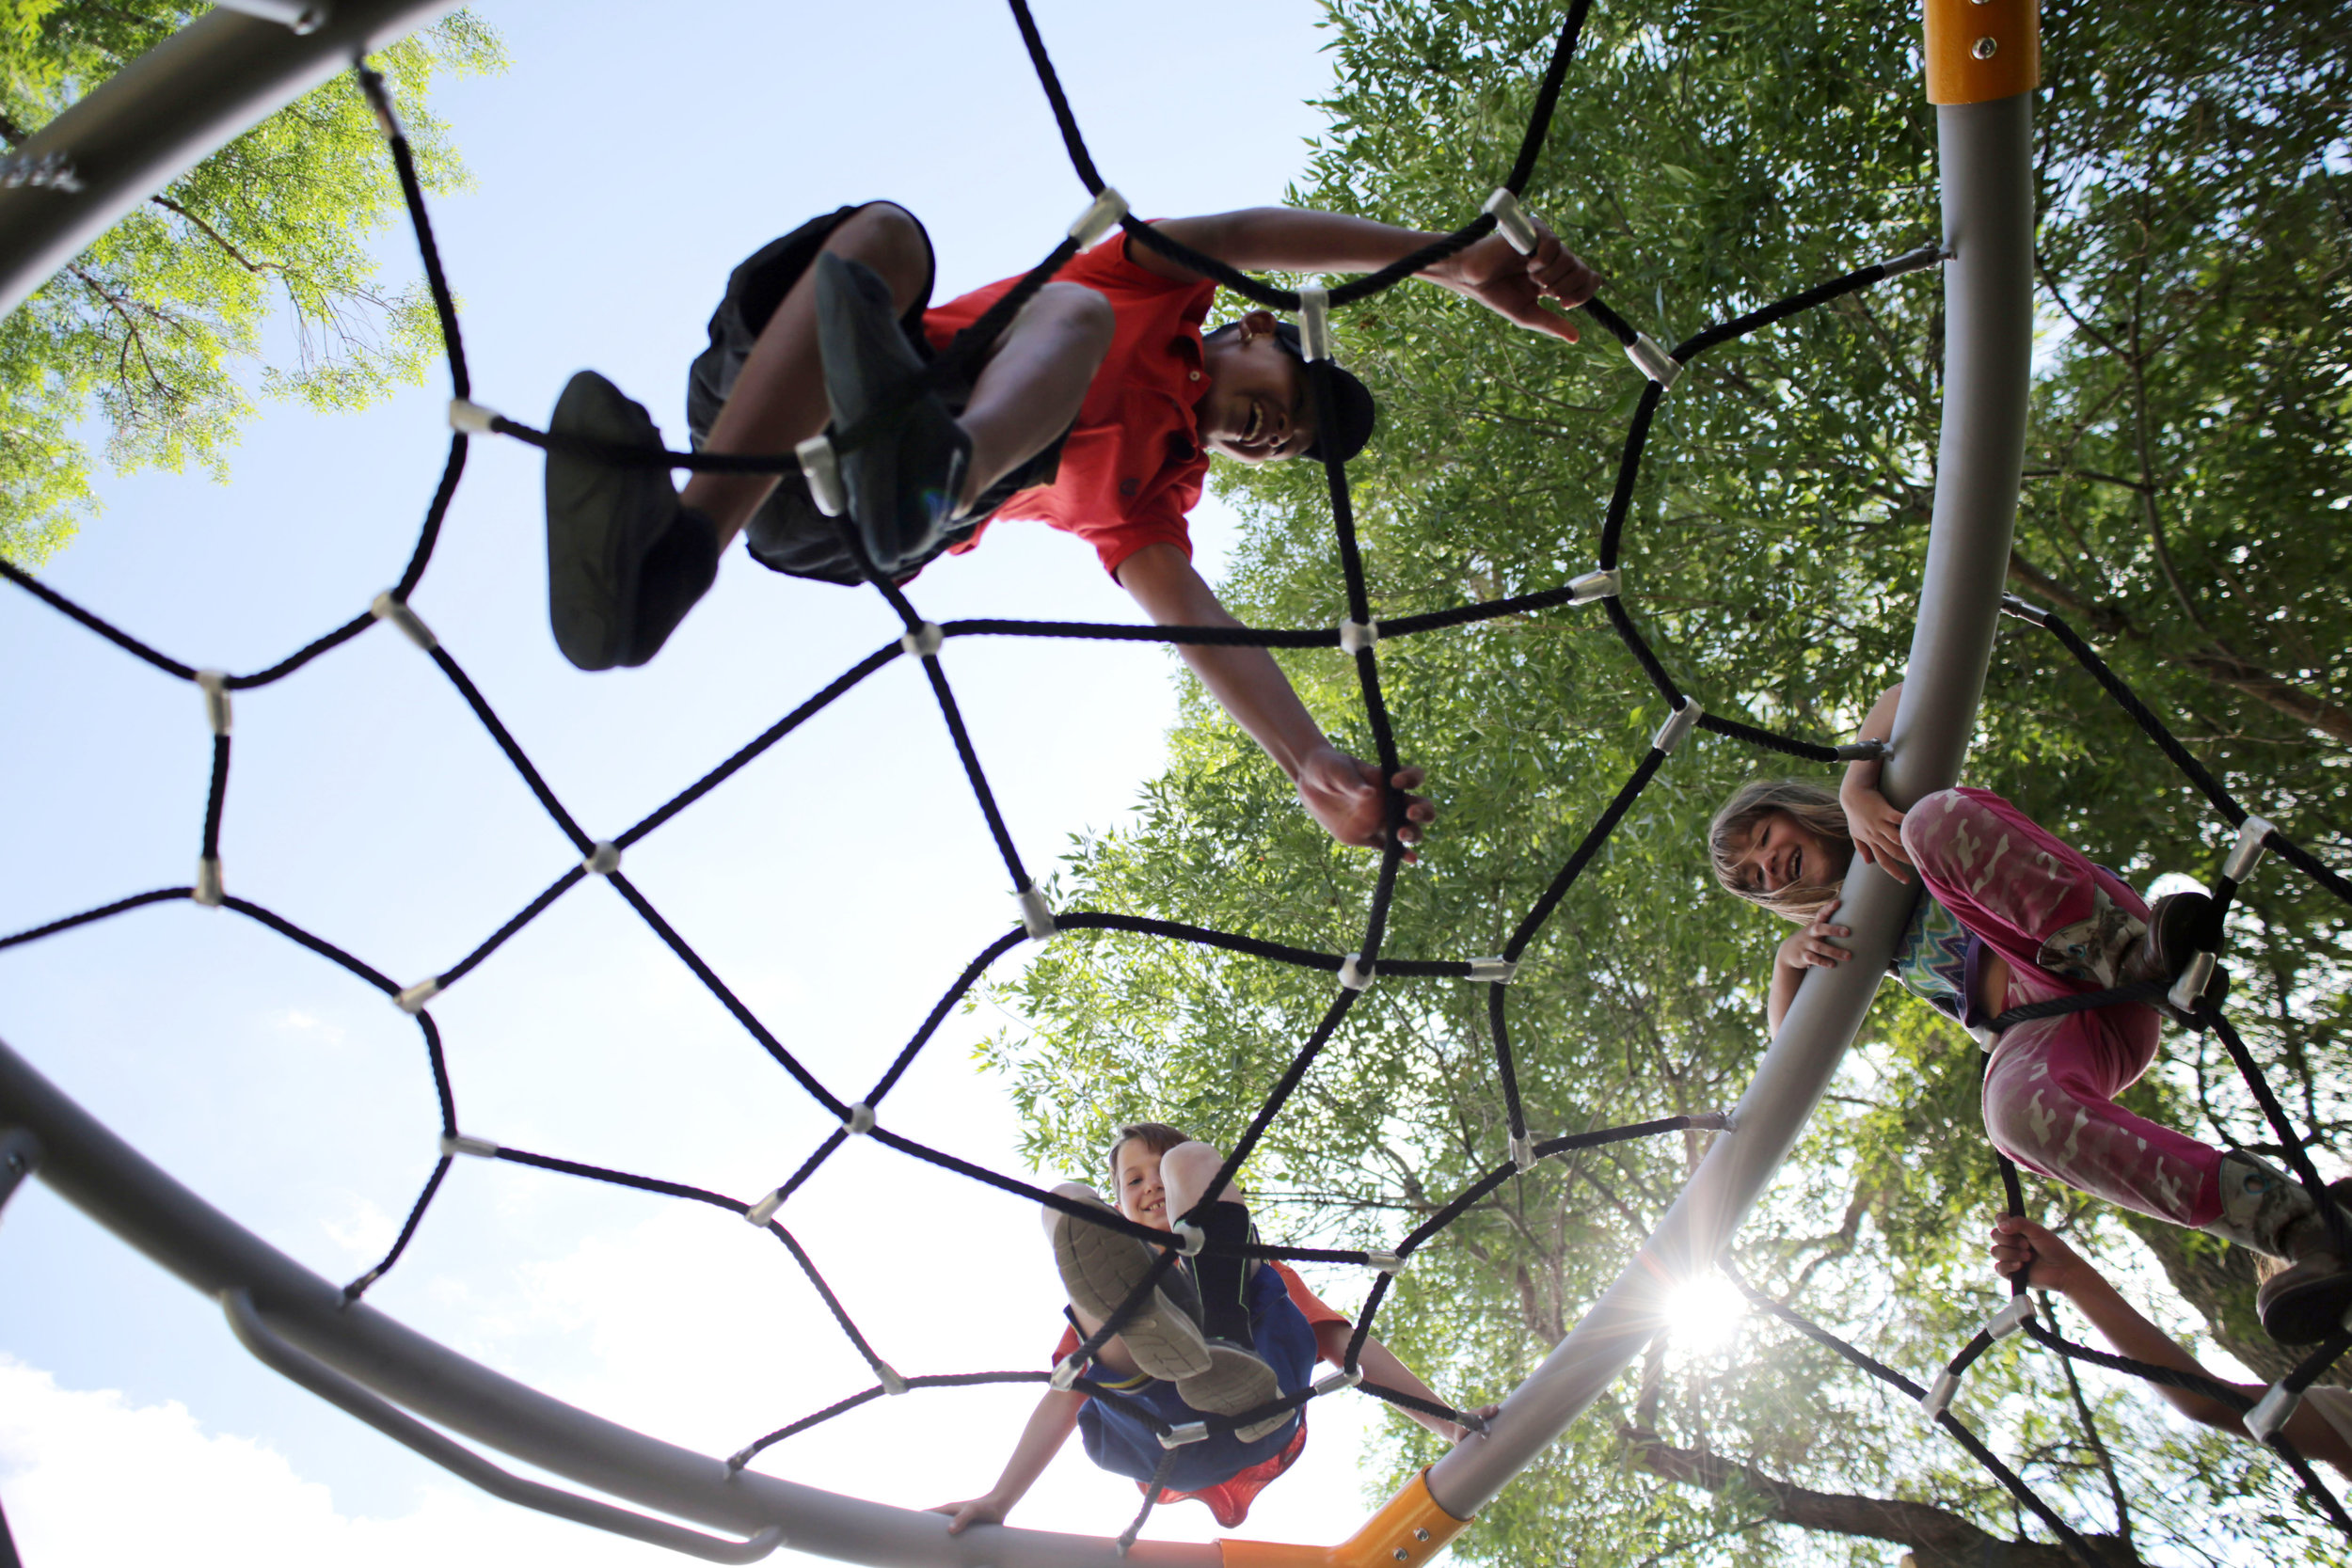 Steven Burton 11, bottom, Mario Hernandez 14, top, and Rylee Burton 6, climb on a spider web at Lincoln Park in Greeley, Colorado, June 2017. Steven, Mario and Rylee were really excited to play on the playground at Lincoln Park as it just re-opened after being under construction (Greeley Tribune Newspaper).